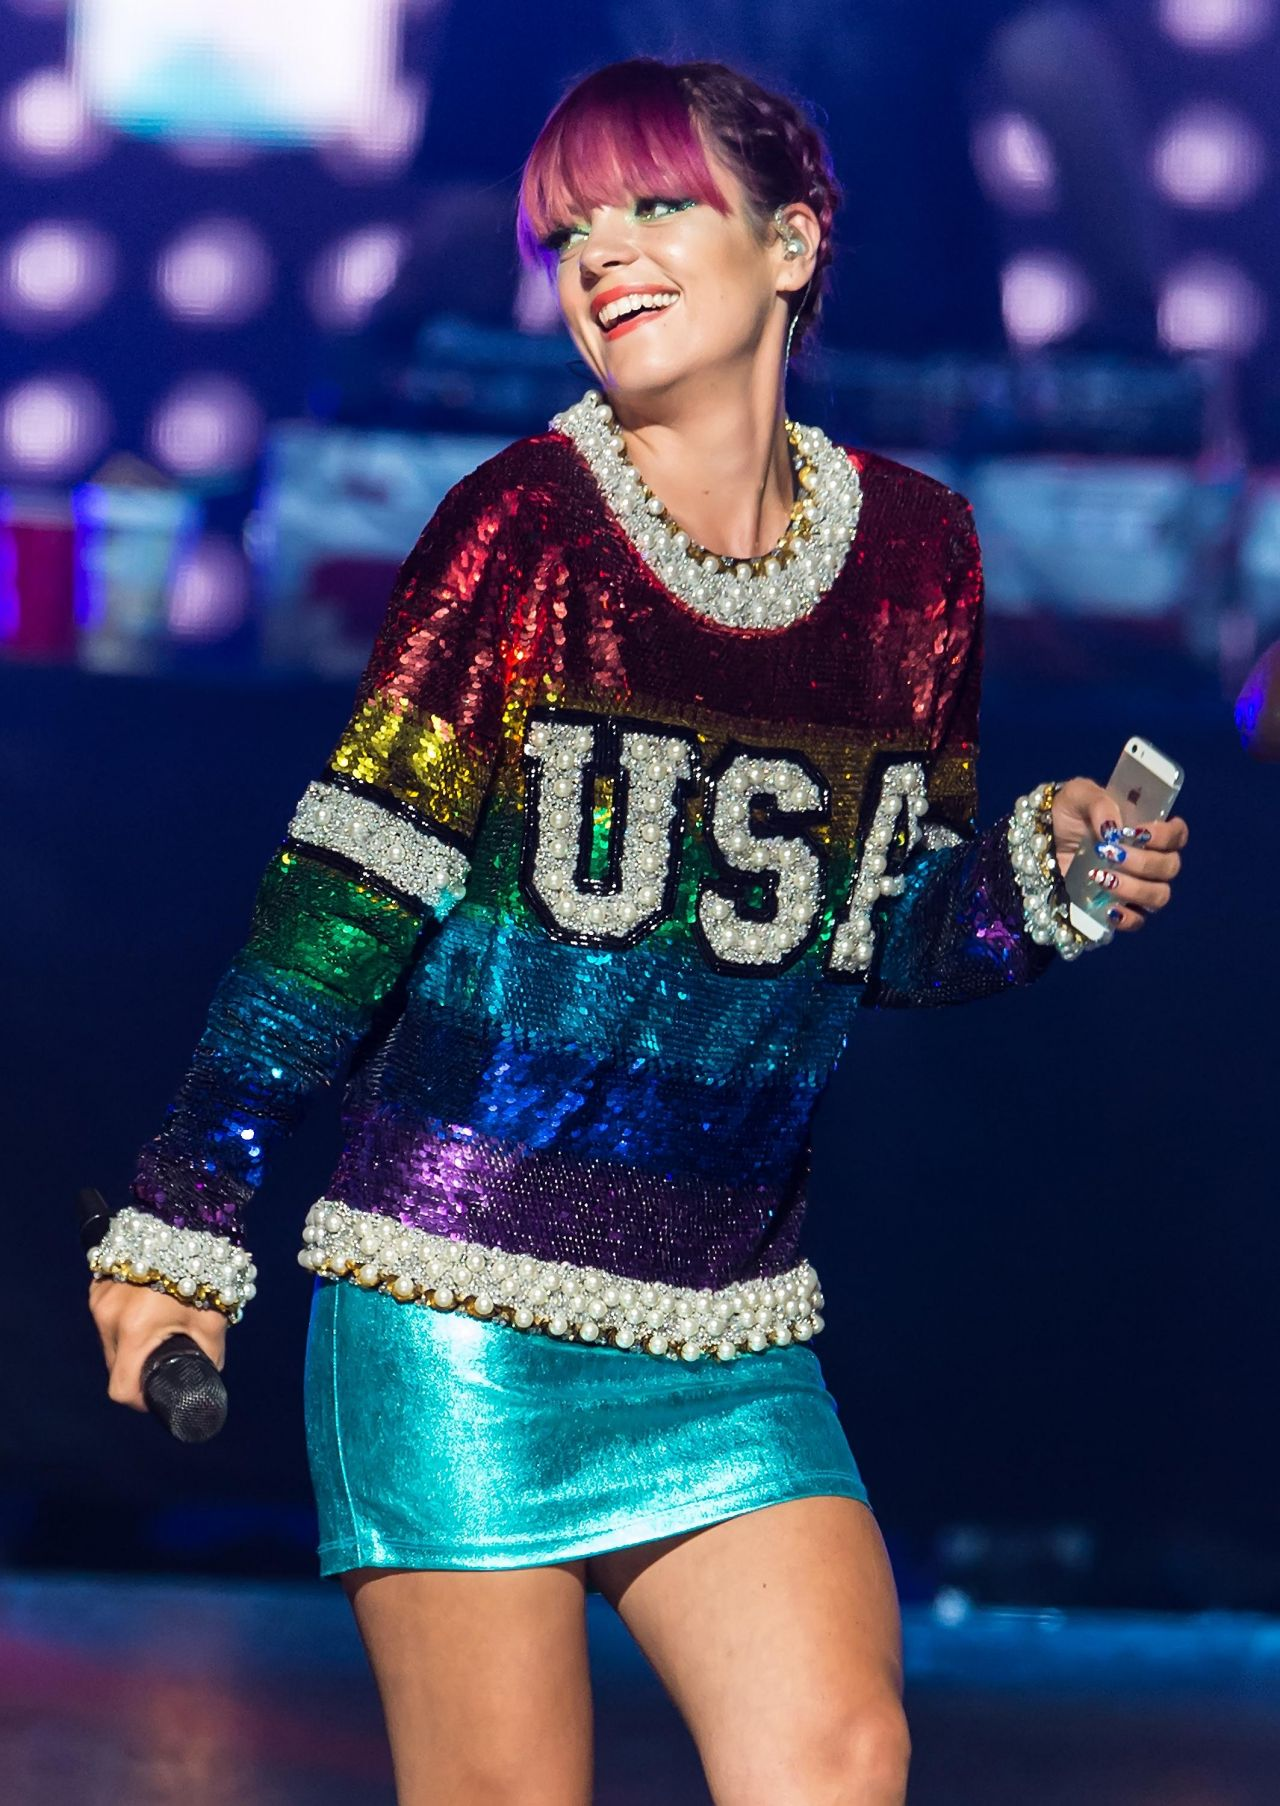 Lily Allen Performs At The Wells Fargo Center In